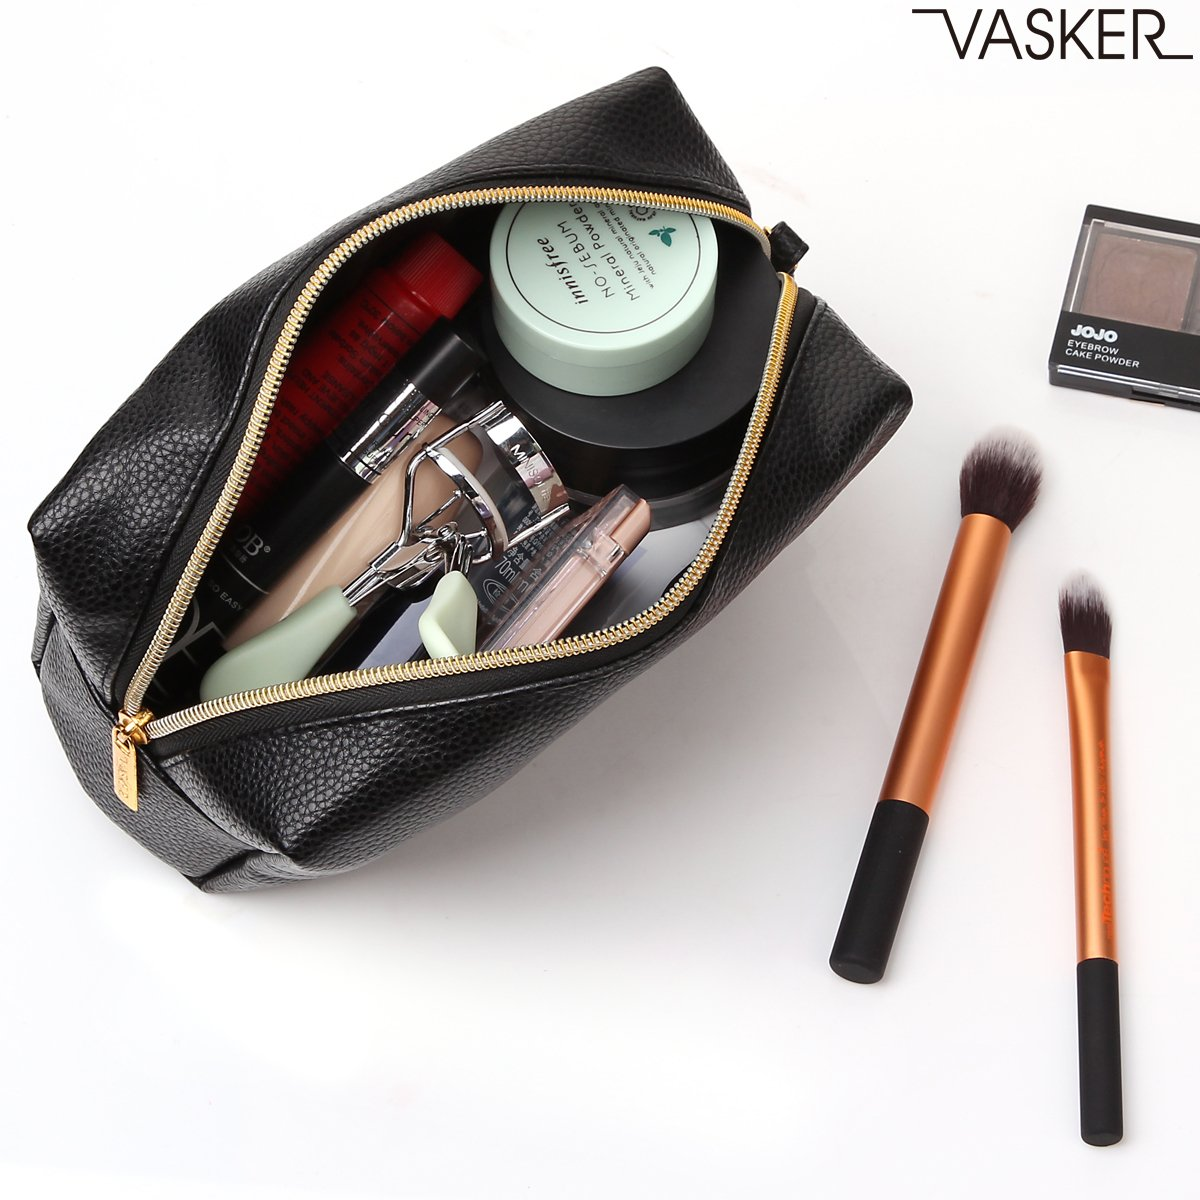 VASKER PU Leather Makeup Bag Handy Cosmetic Pouch Travel Portable Handbag Purse Toiletry Storage Bag Large Organizer with Zipper Women by VASKER (Image #6)